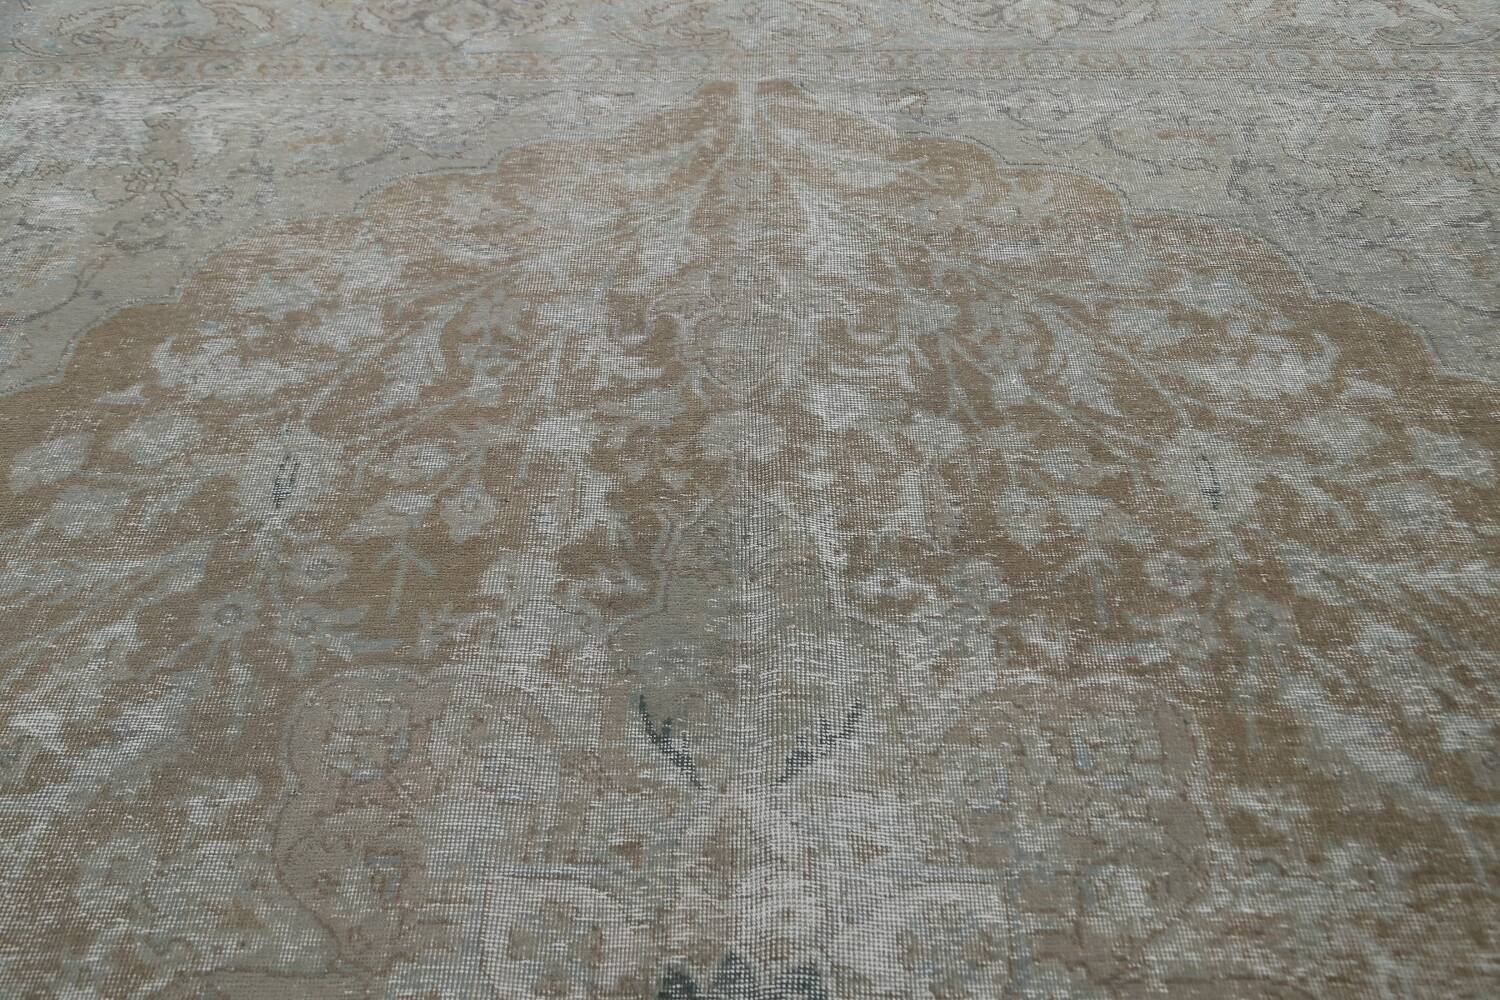 Muted Distressed Tabriz Persian Area Rug 10x13 image 13